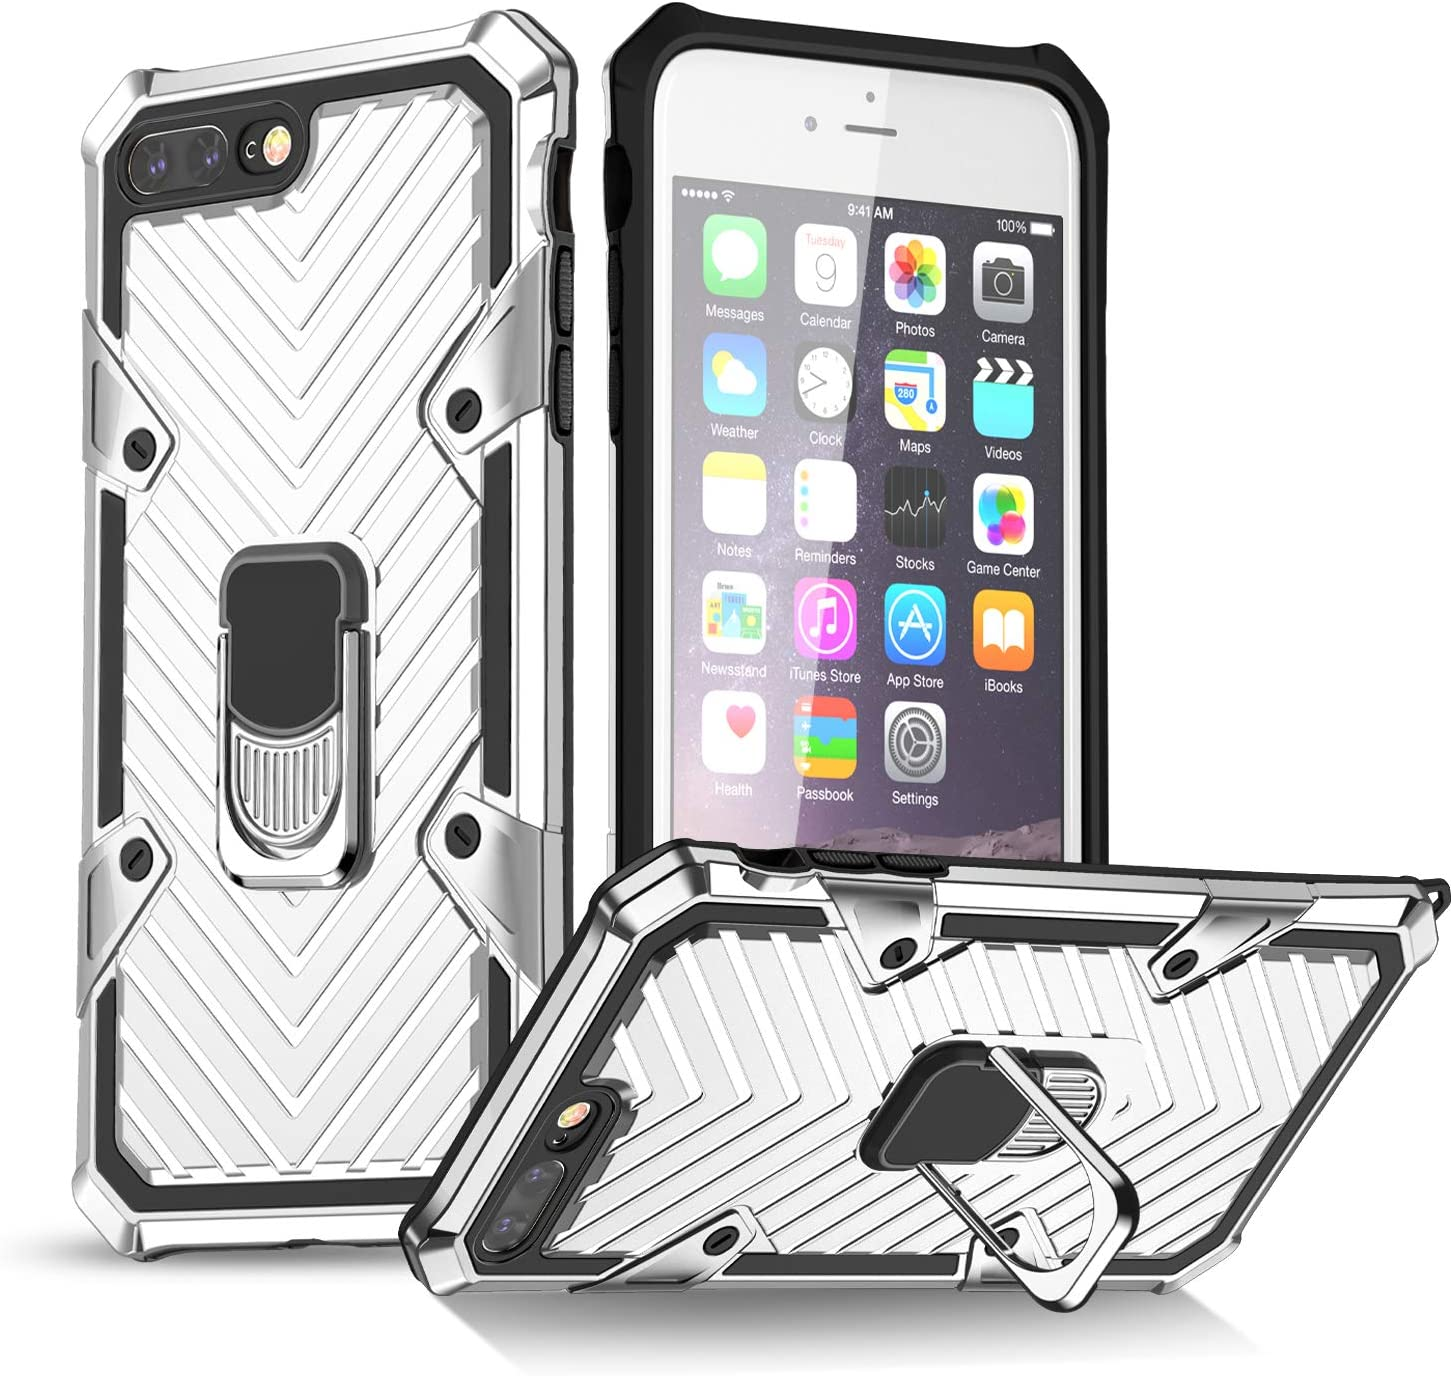 iPhone 7 Plus Case | iPhone 8 Plus Case | Kickstand | [ Military Grade ] 15ft. SGS Drop Tested Protective Case | Compatible for Apple iPhone 8 Plus/iPhone 7 Plus-Silver (iPhone 7/8 Plus)